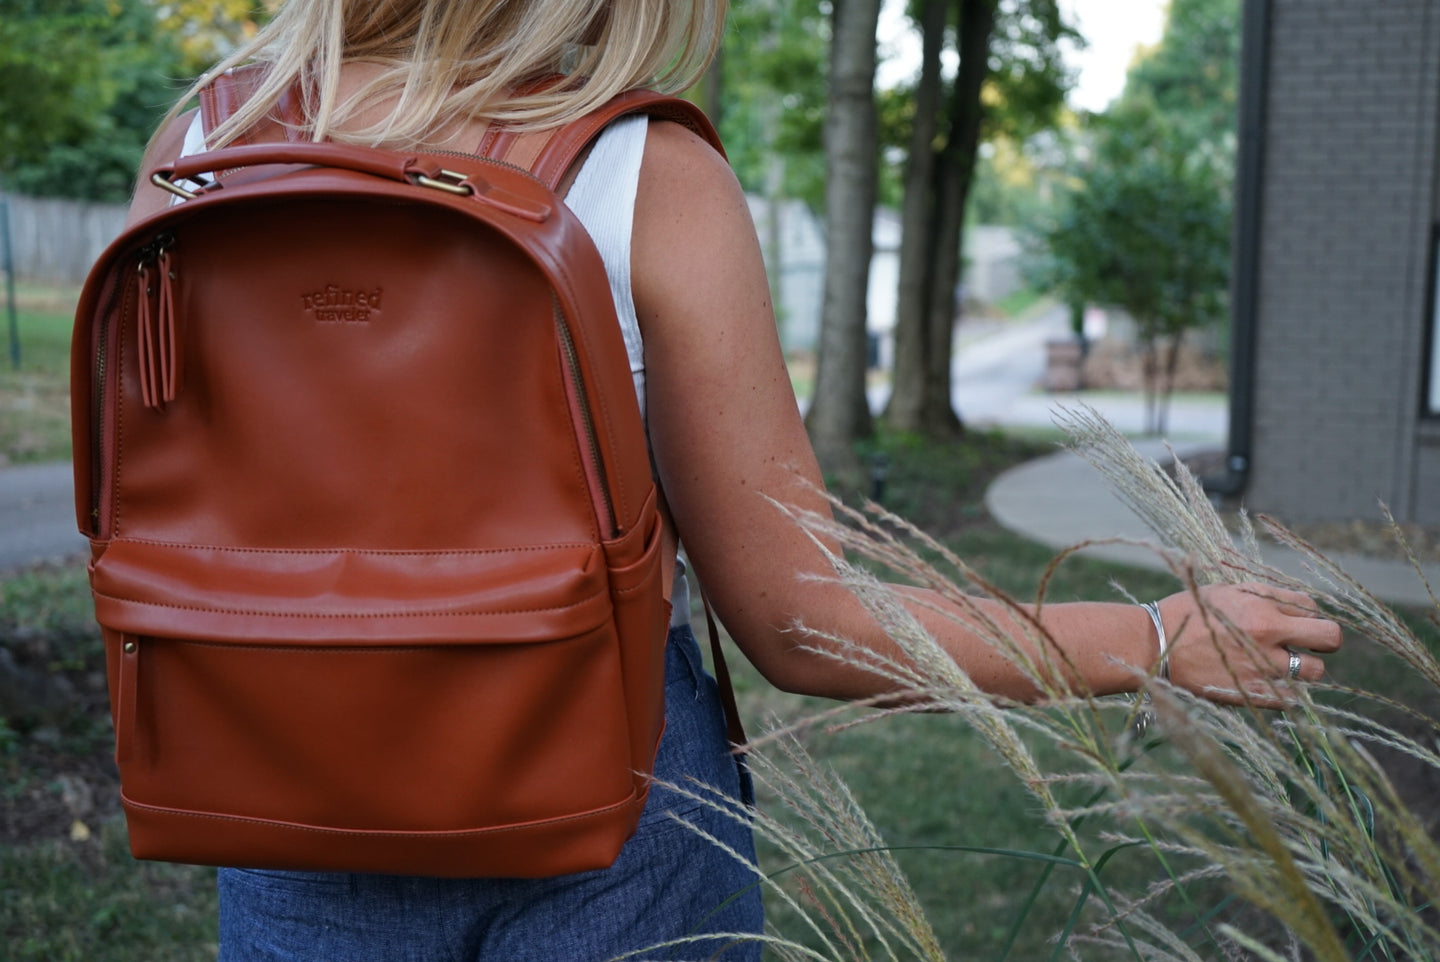 vegan leather backpack header image